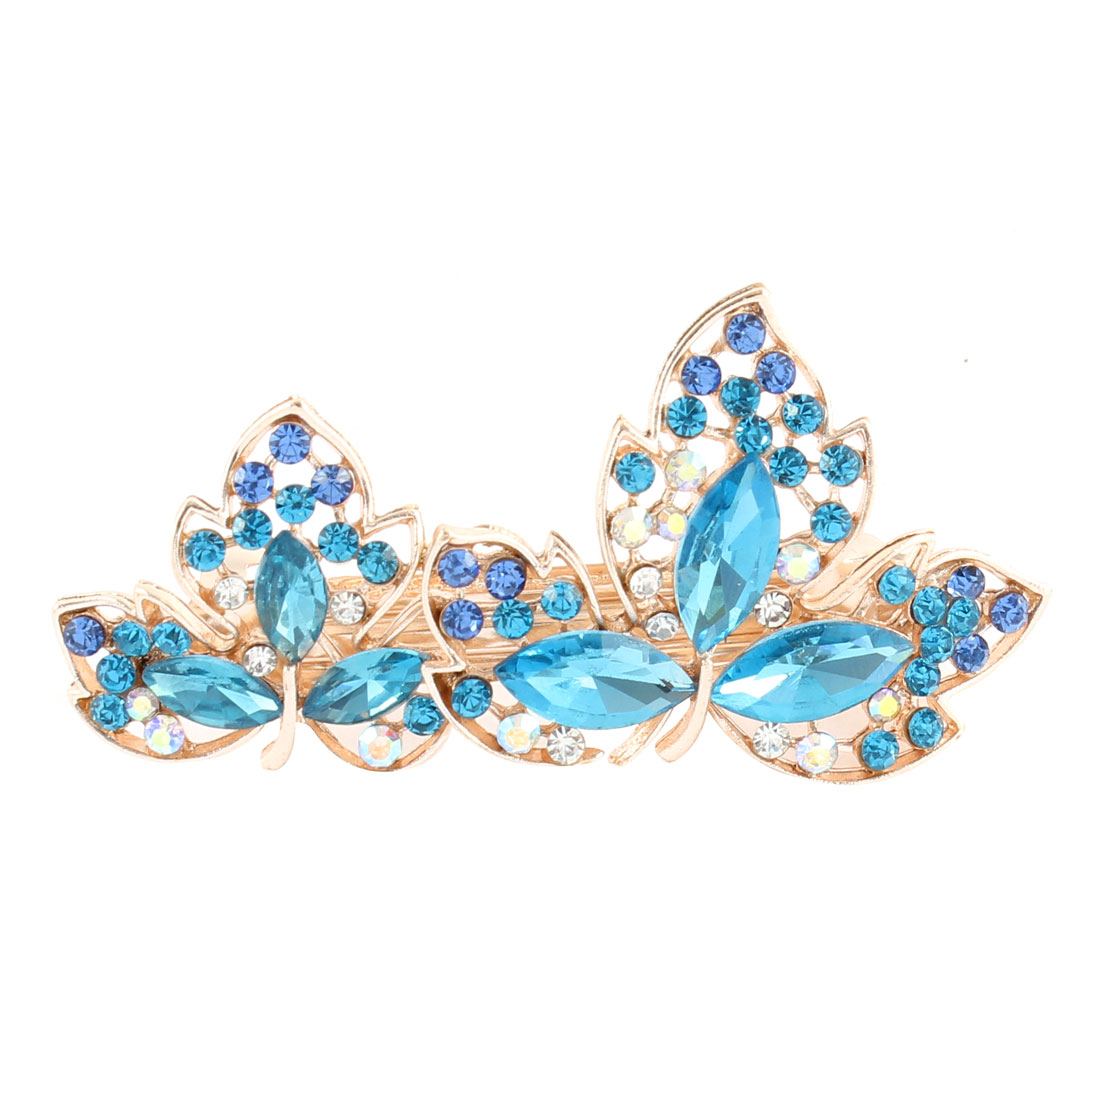 Rhinestone Bling Lady Floral French Hair Clip Hairpin Barrette Blue